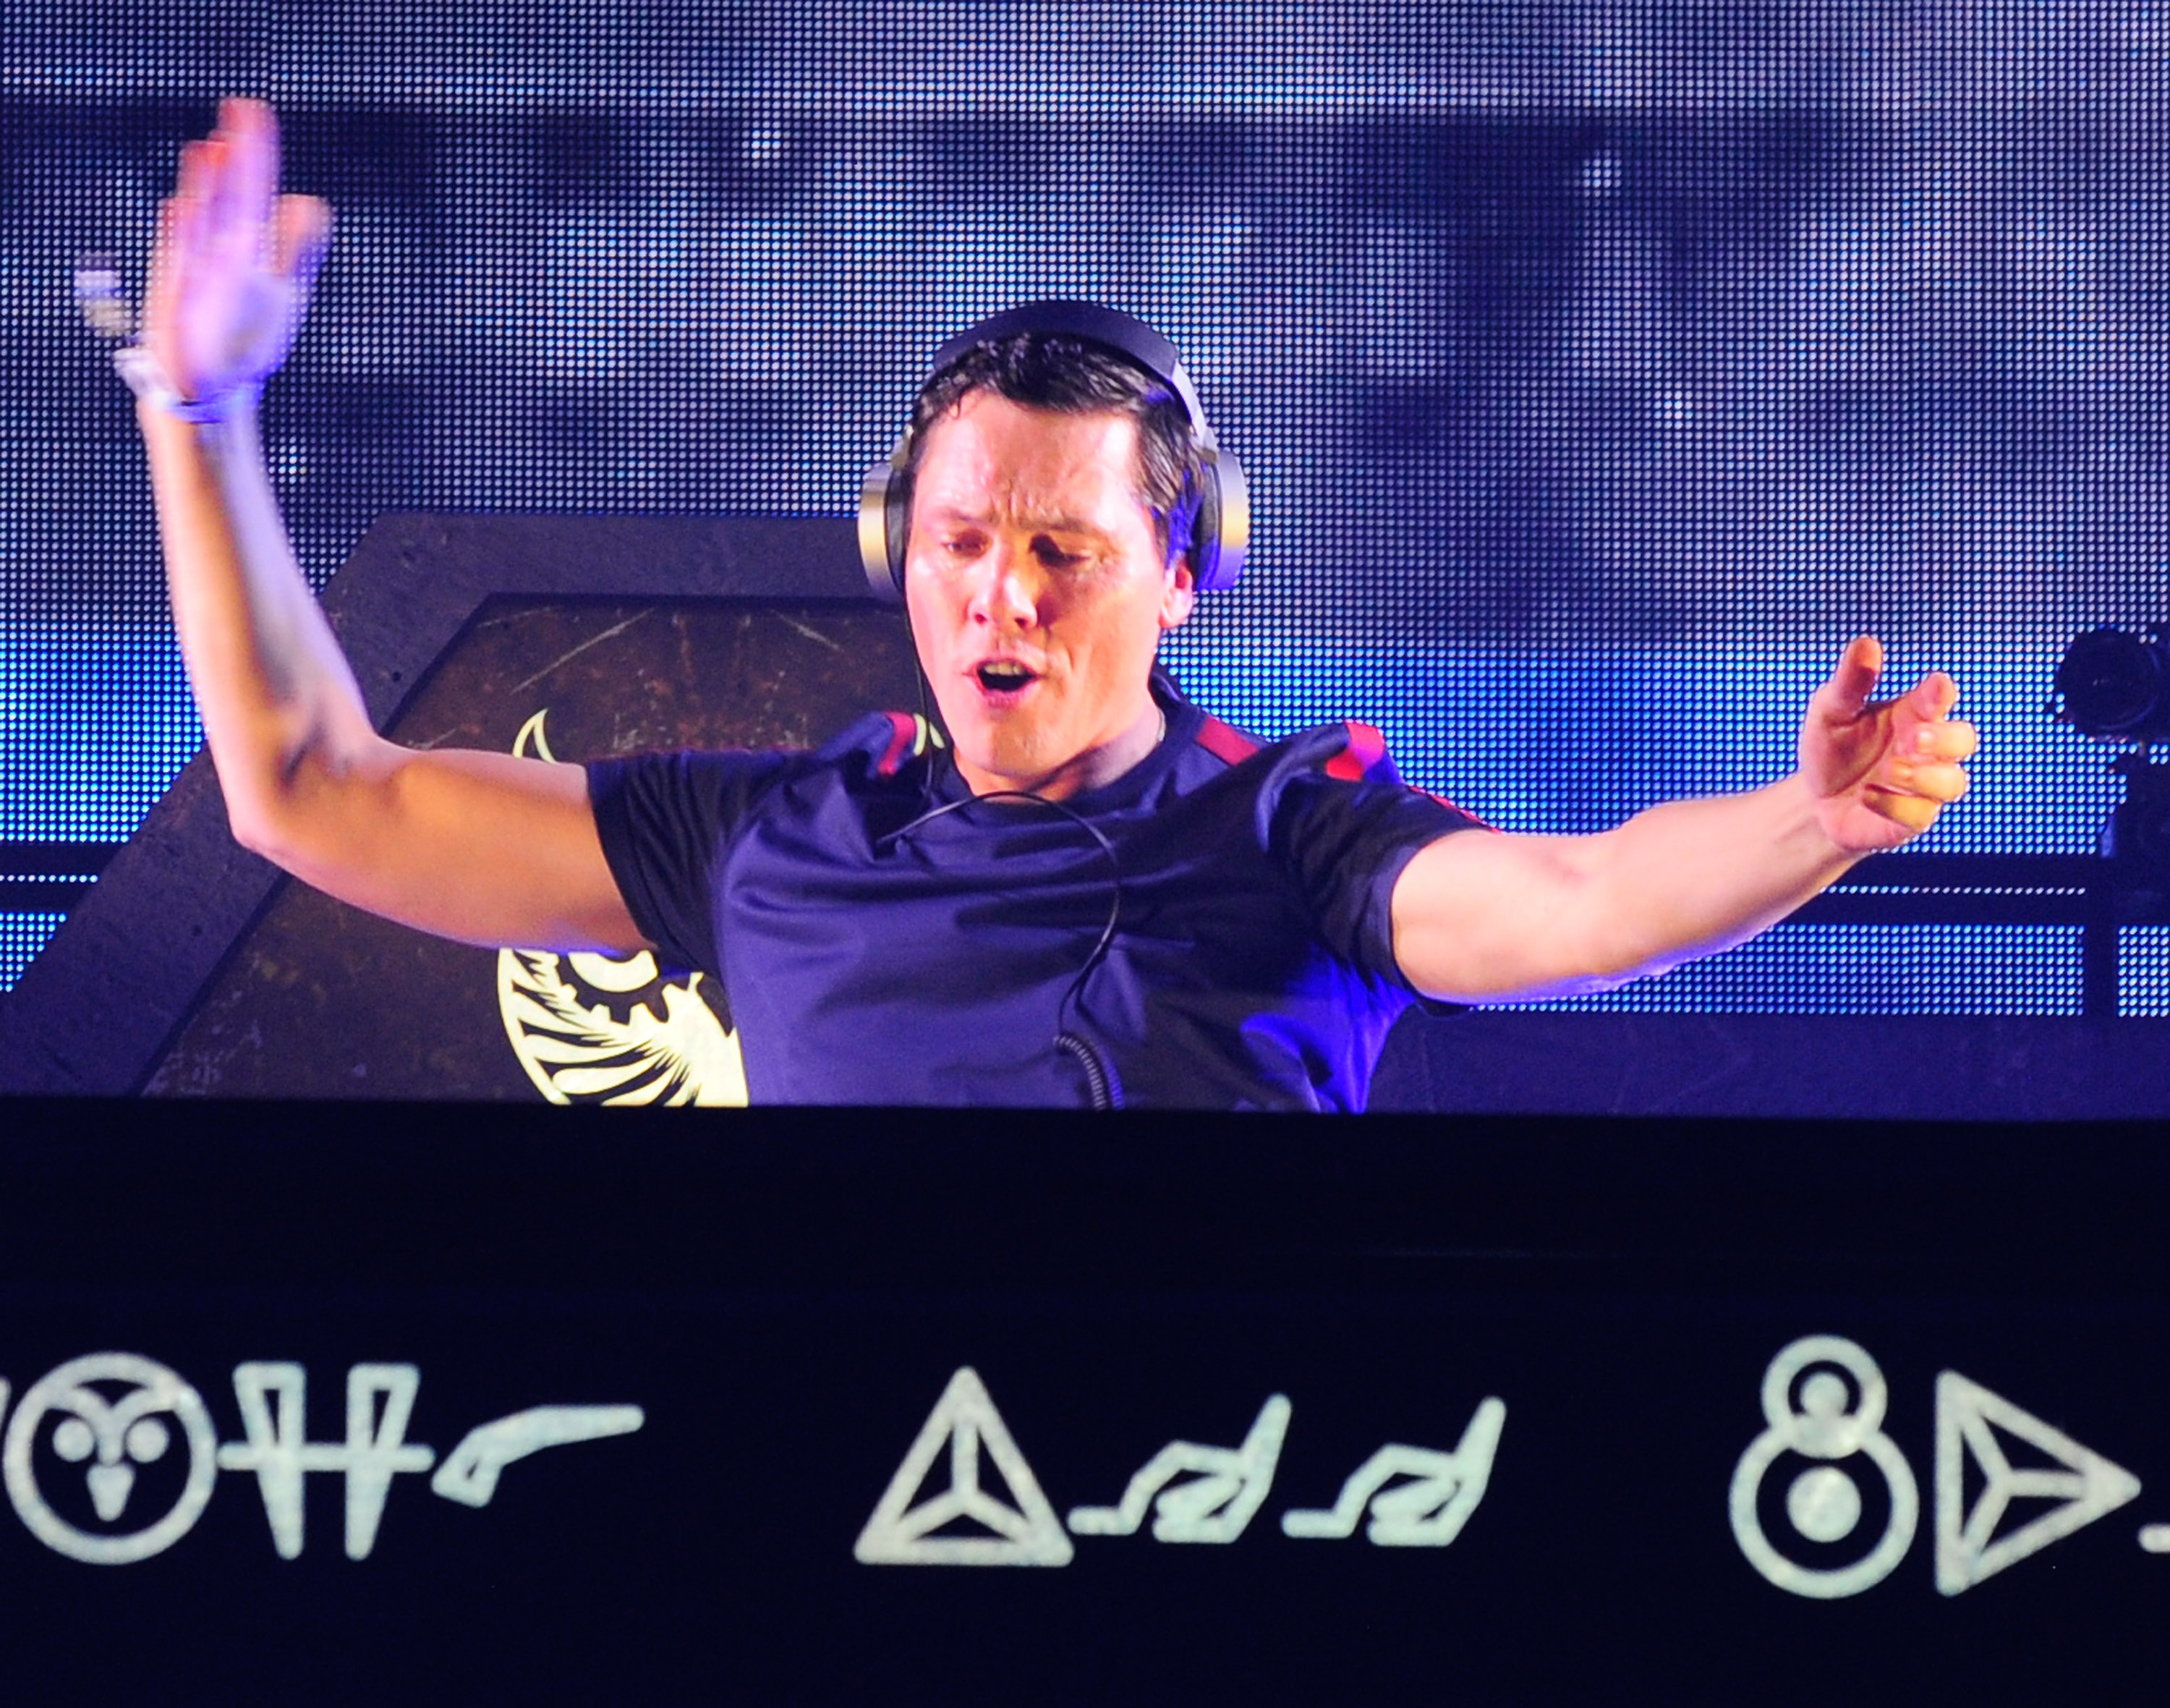 LAS VEGAS, NV - JUNE 19:  Dj/producer Tiesto performs during the 20th annual Electric Daisy Carnival at Las Vegas Motor Speed